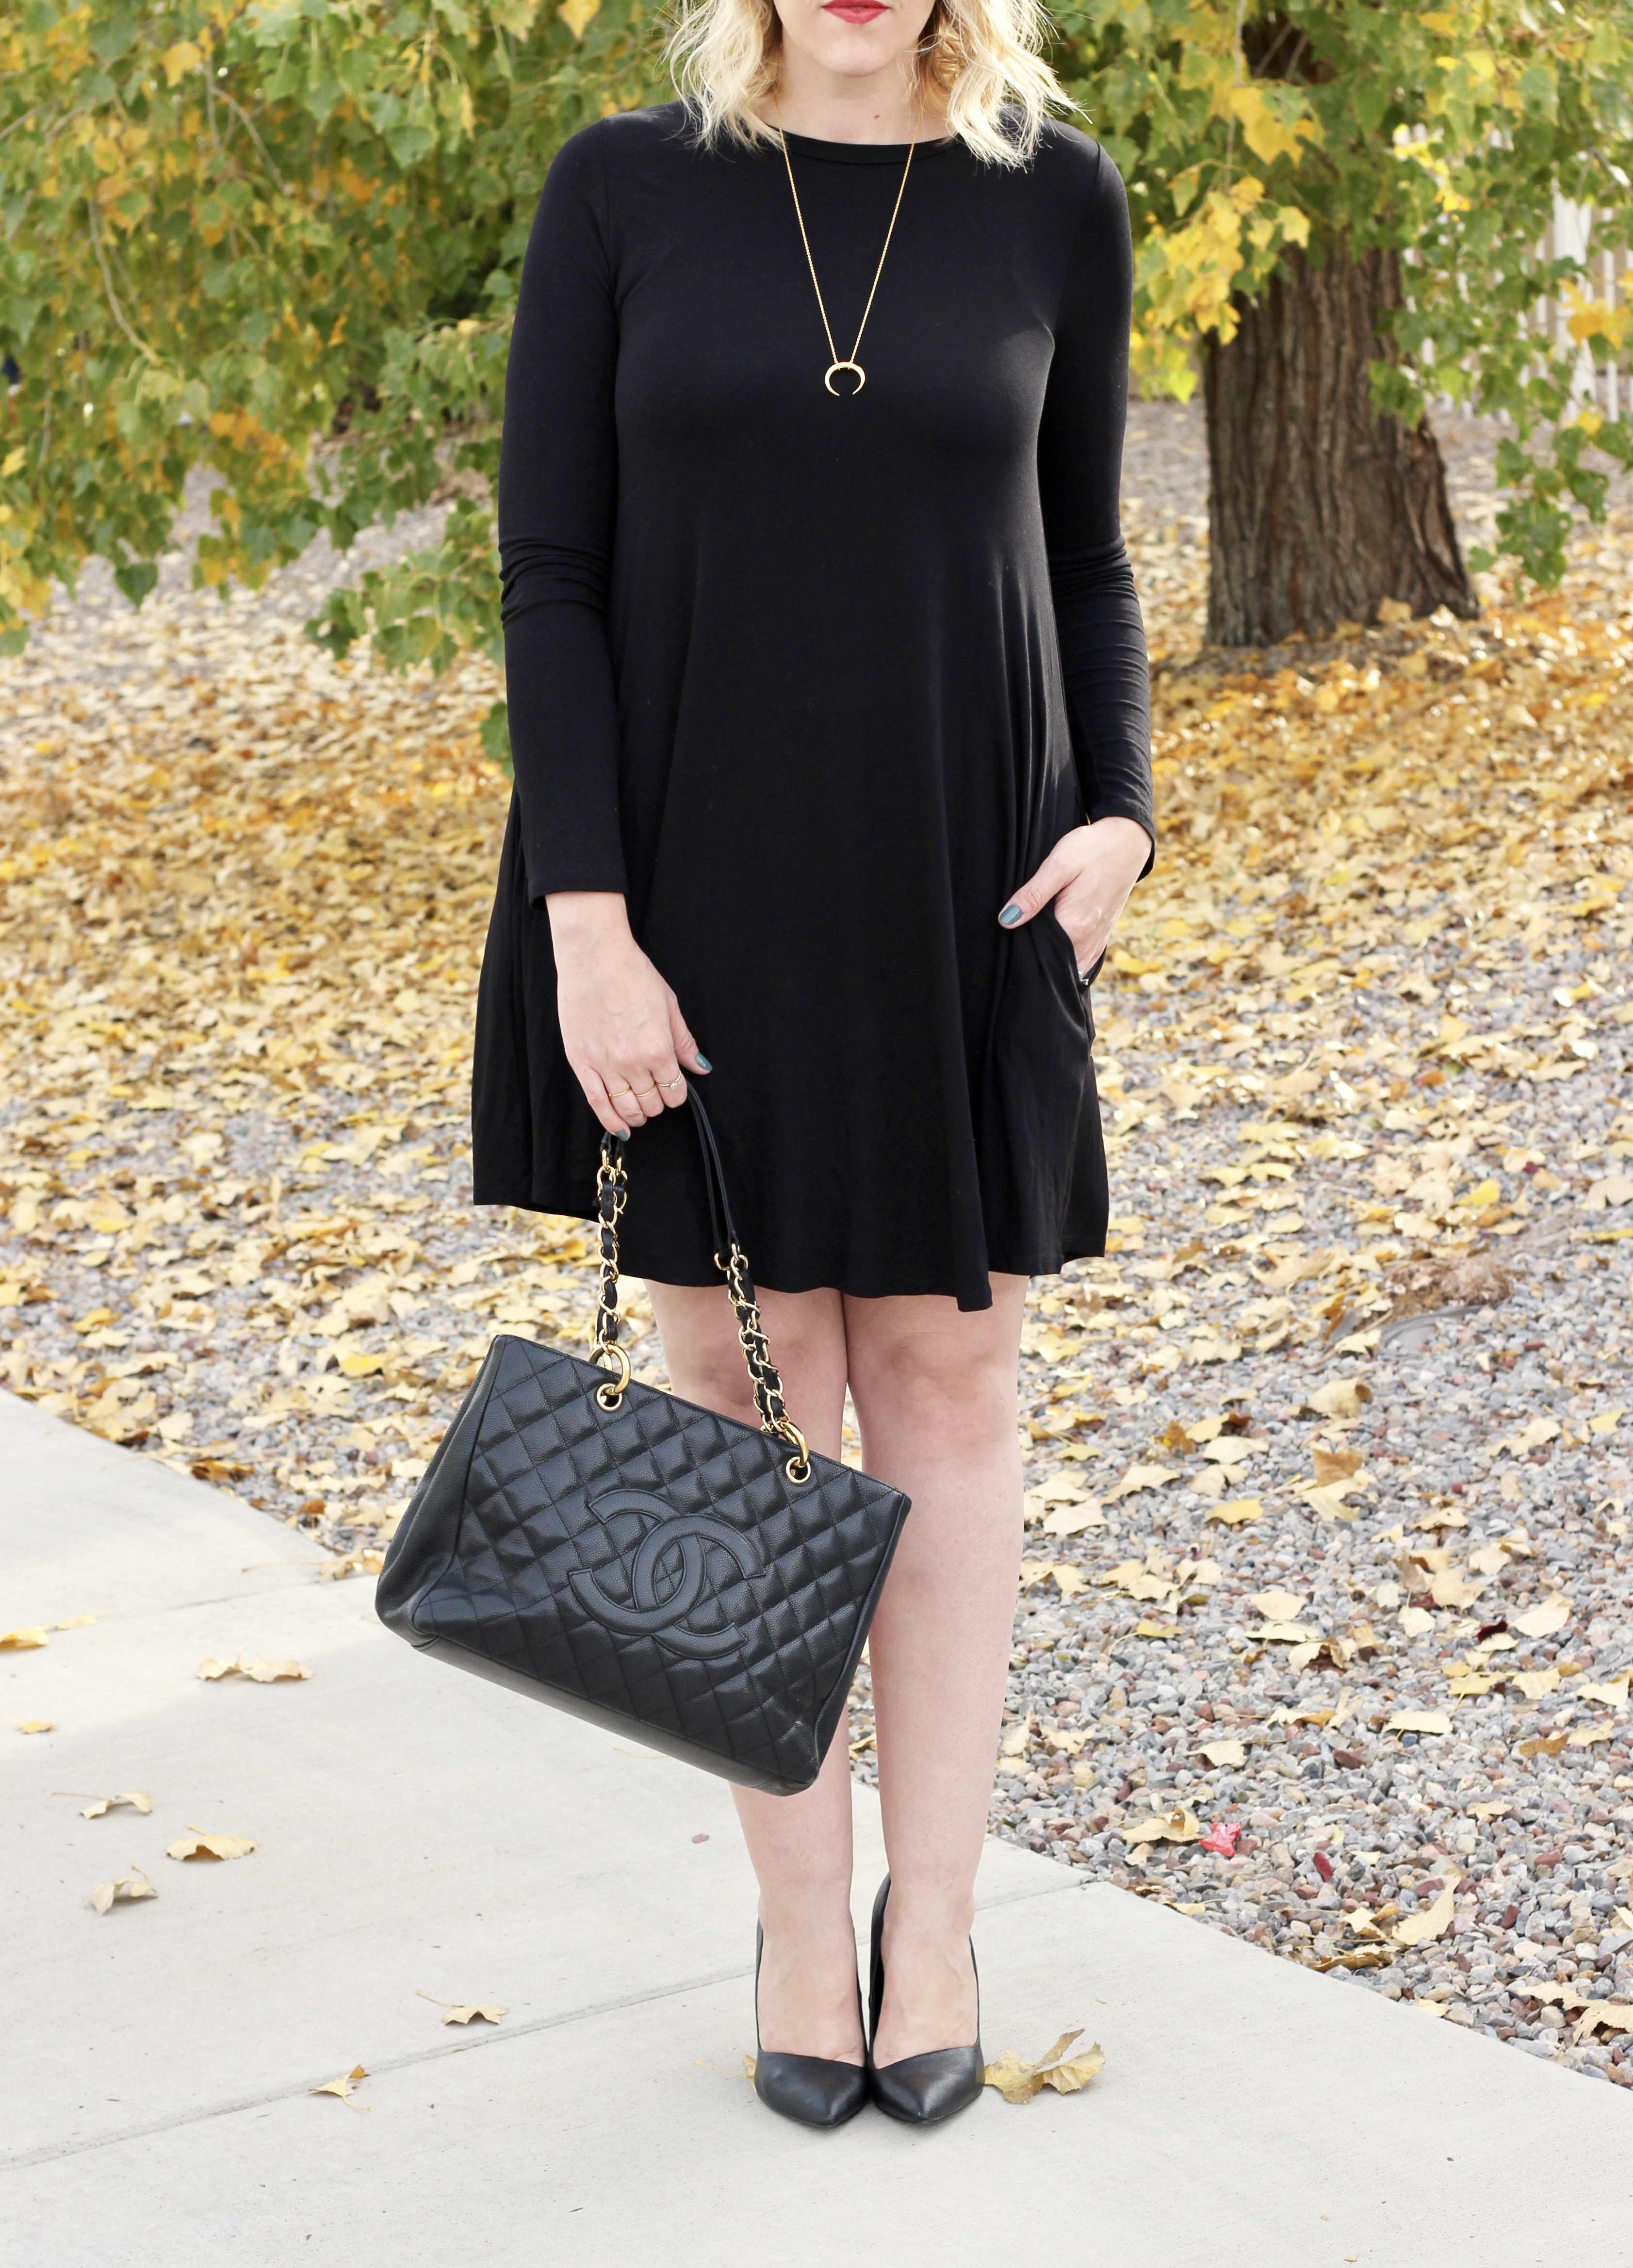 Chanel GST and a LBD #lbd #chanelgst #chanel